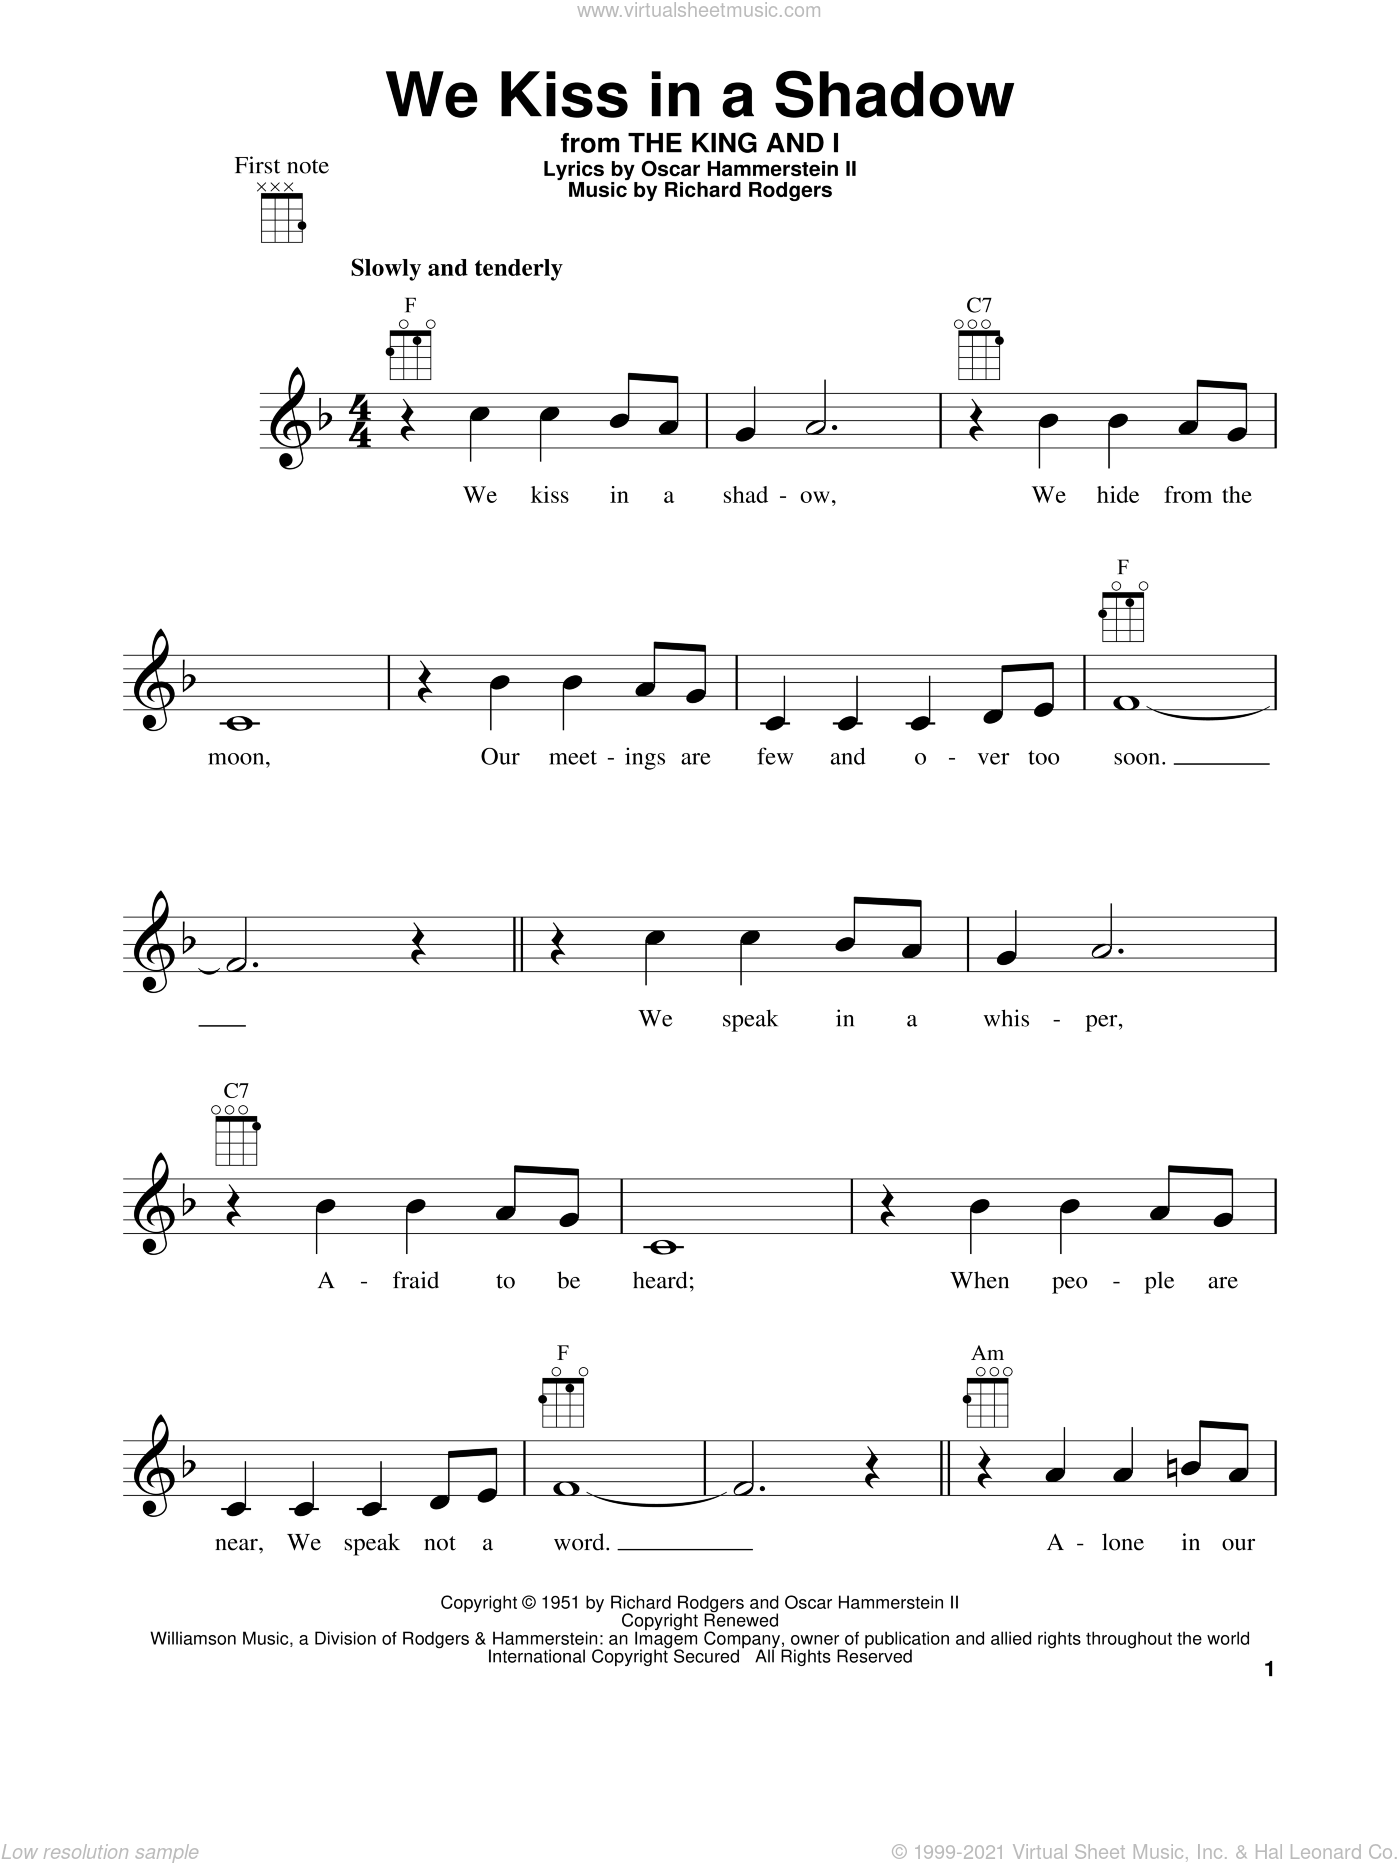 We Kiss In A Shadow sheet music for ukulele by Rodgers & Hammerstein, The King And I (Musical), Oscar II Hammerstein and Richard Rodgers, intermediate skill level